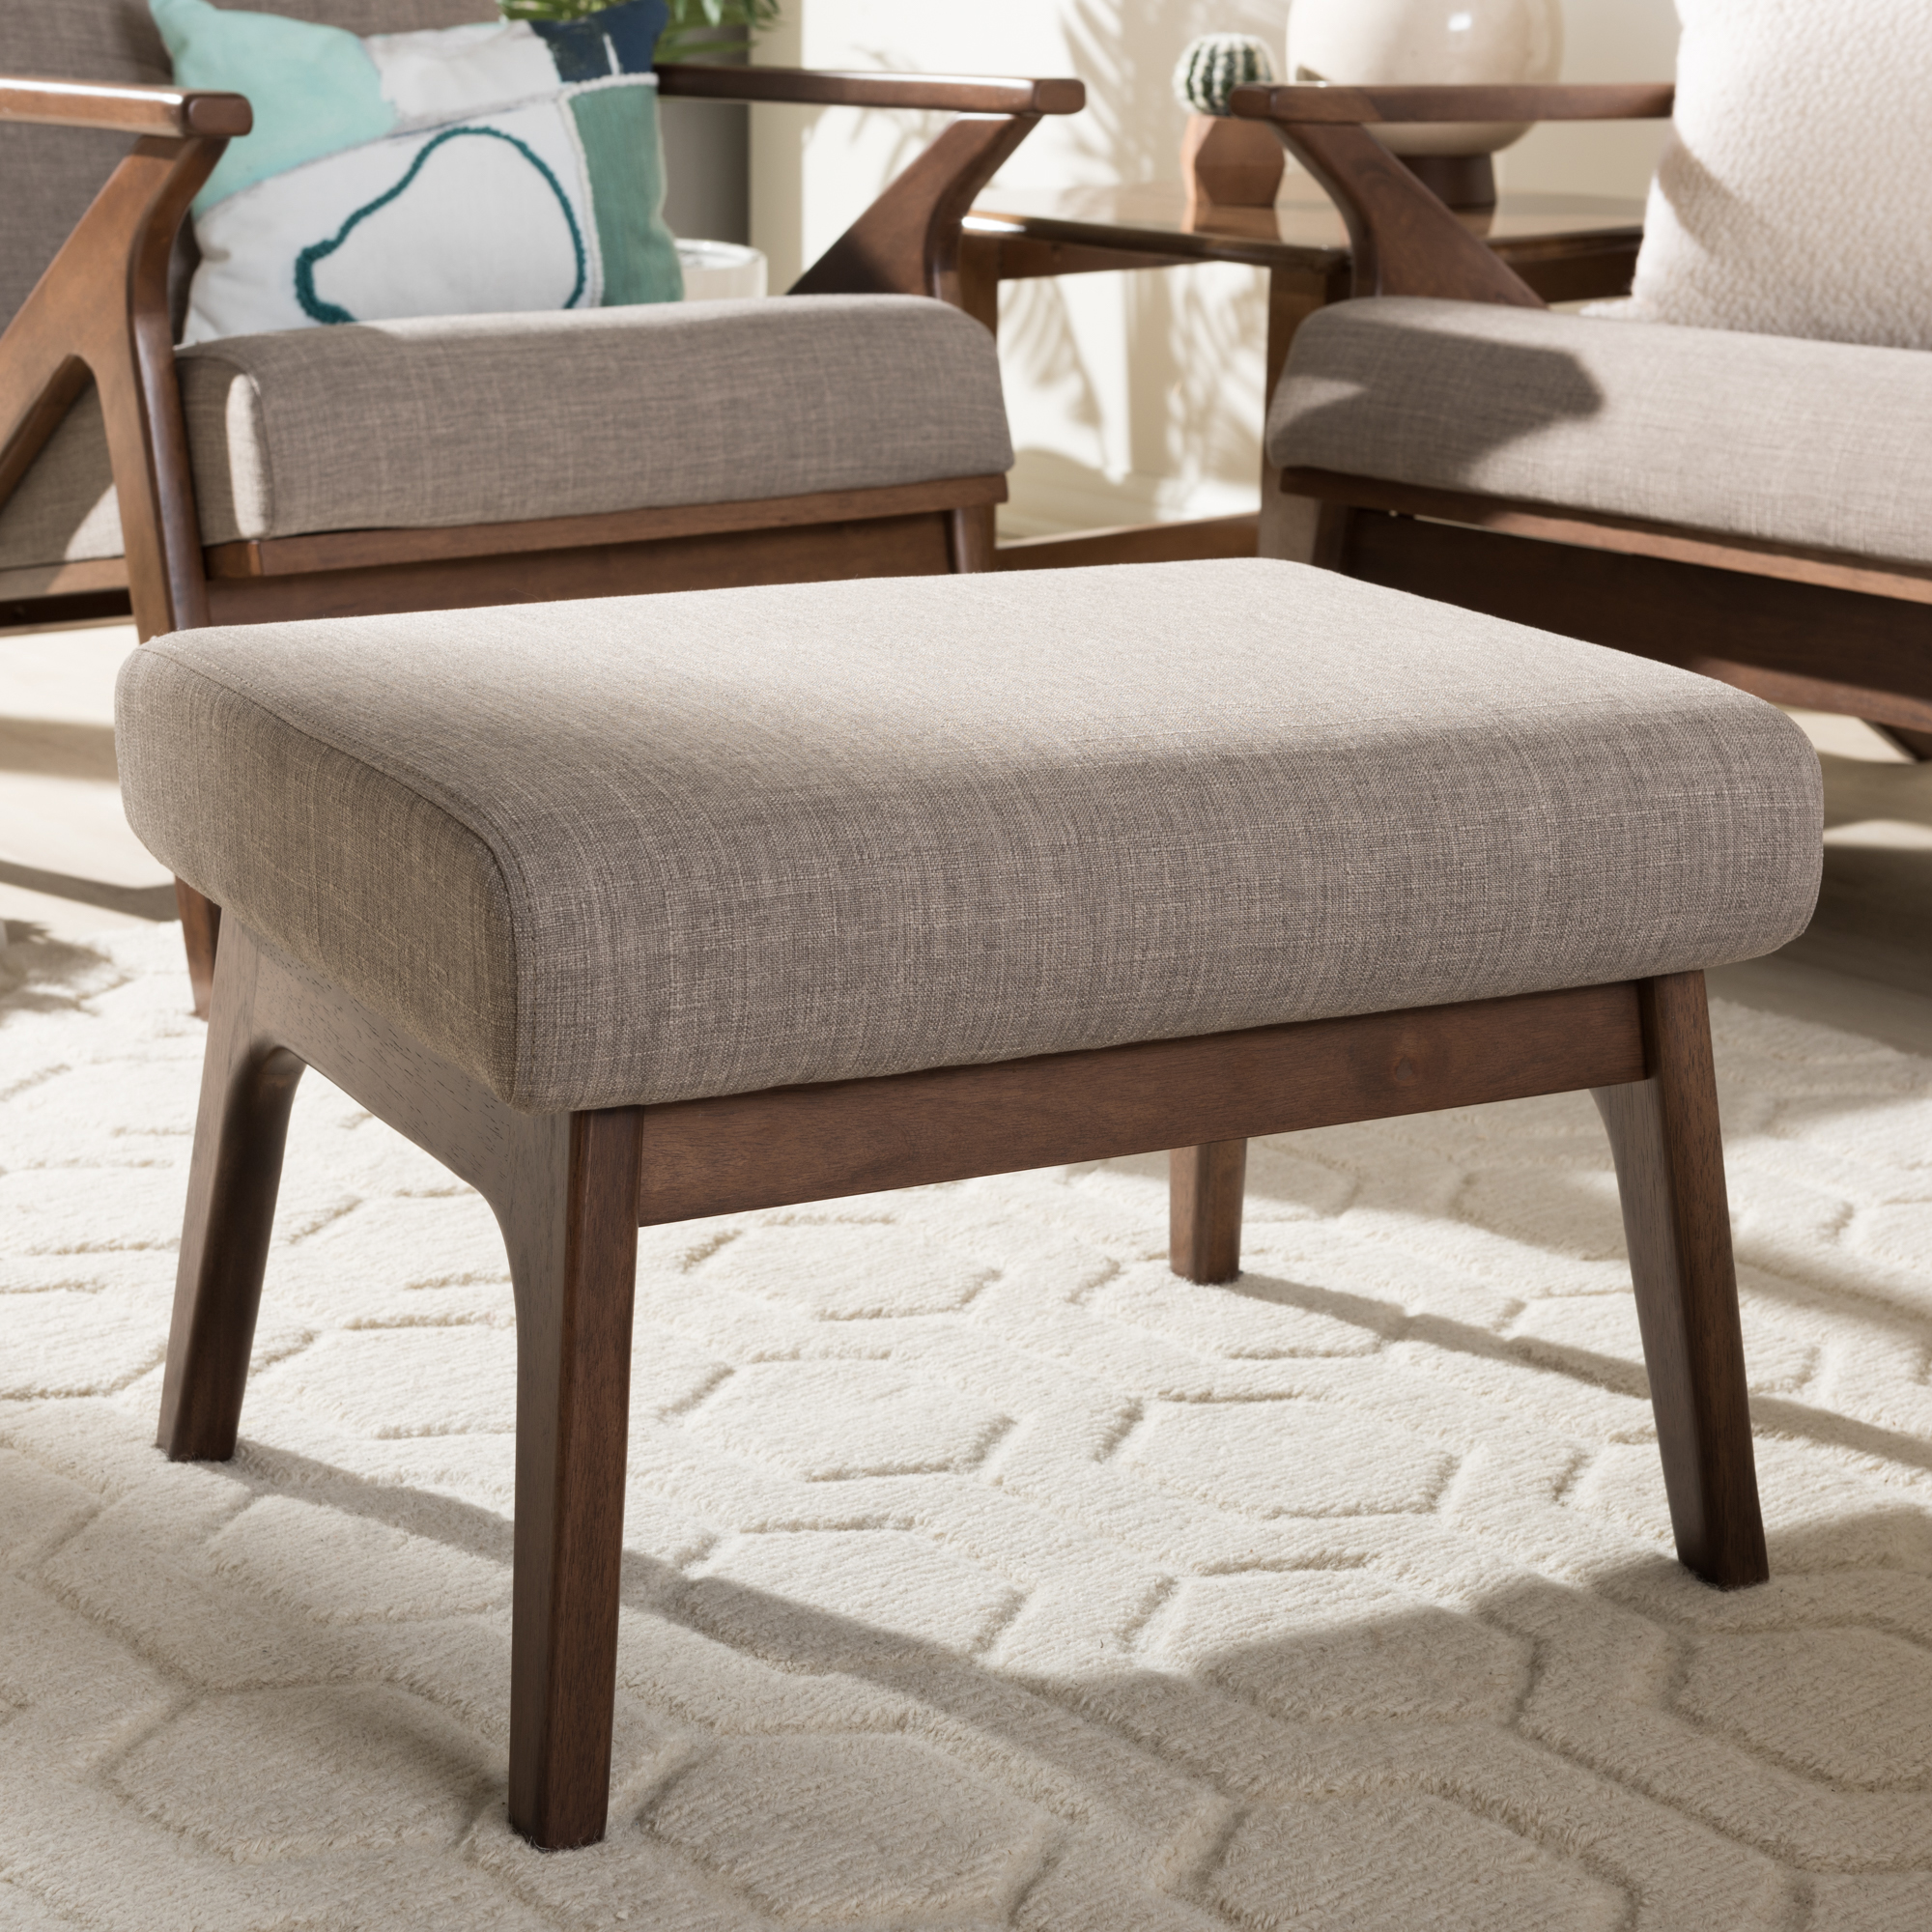 ... Baxton Studio Bianca Mid Century Modern Walnut Wood Light Grey Fabric  Ottoman   IEBianca  ...